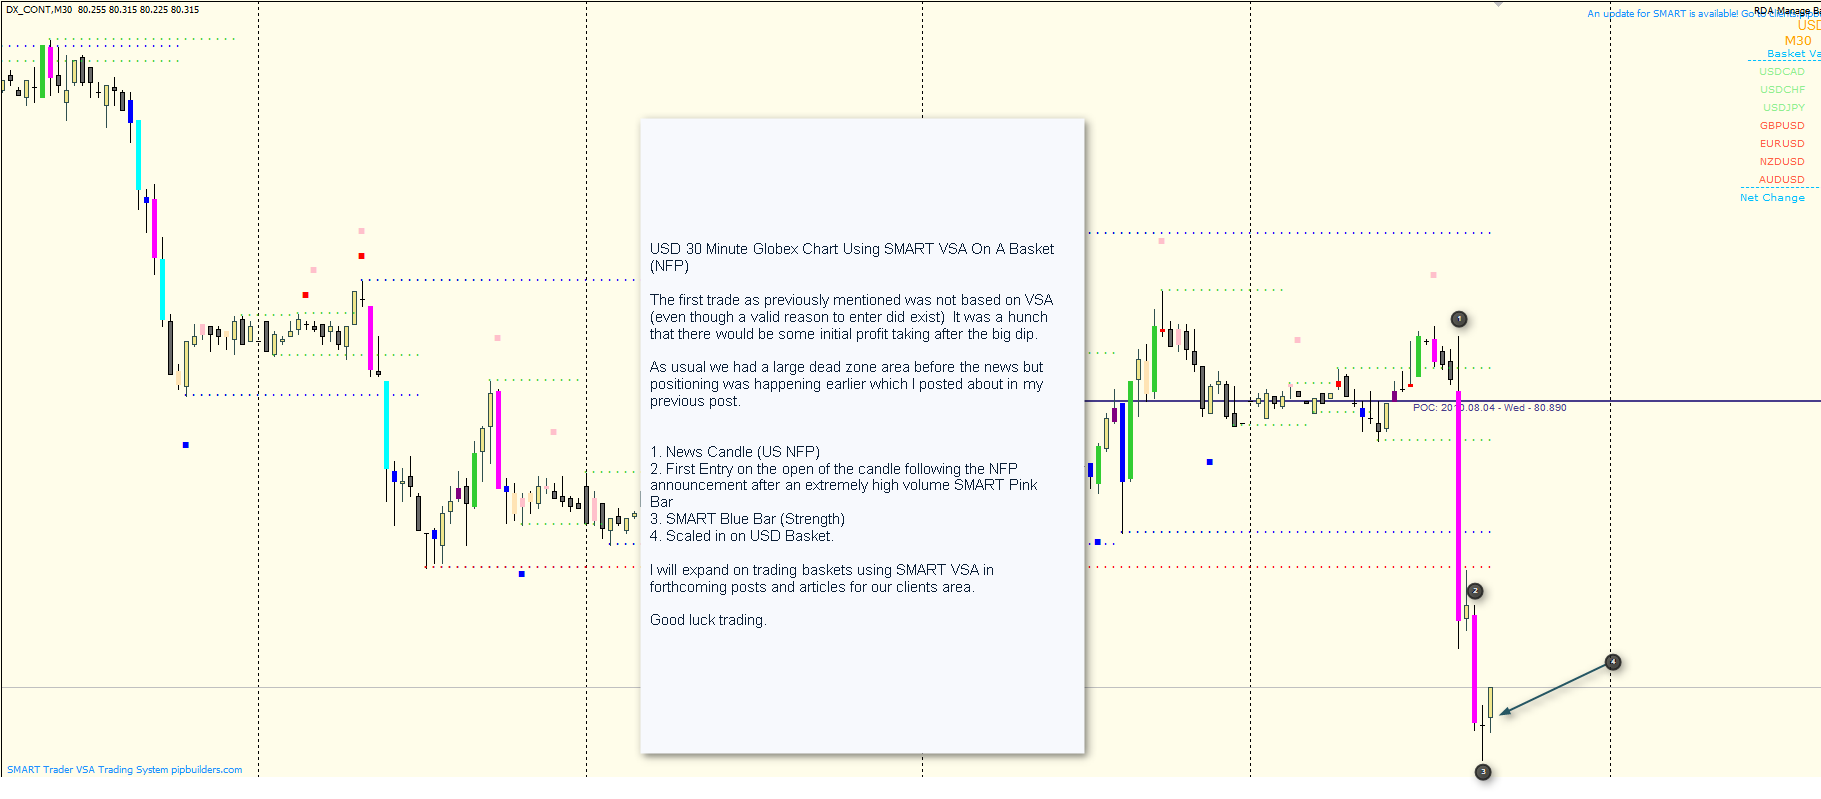 USD Basket Trading After NFP Using SMART VSA (Volume Spread Analysis) Software